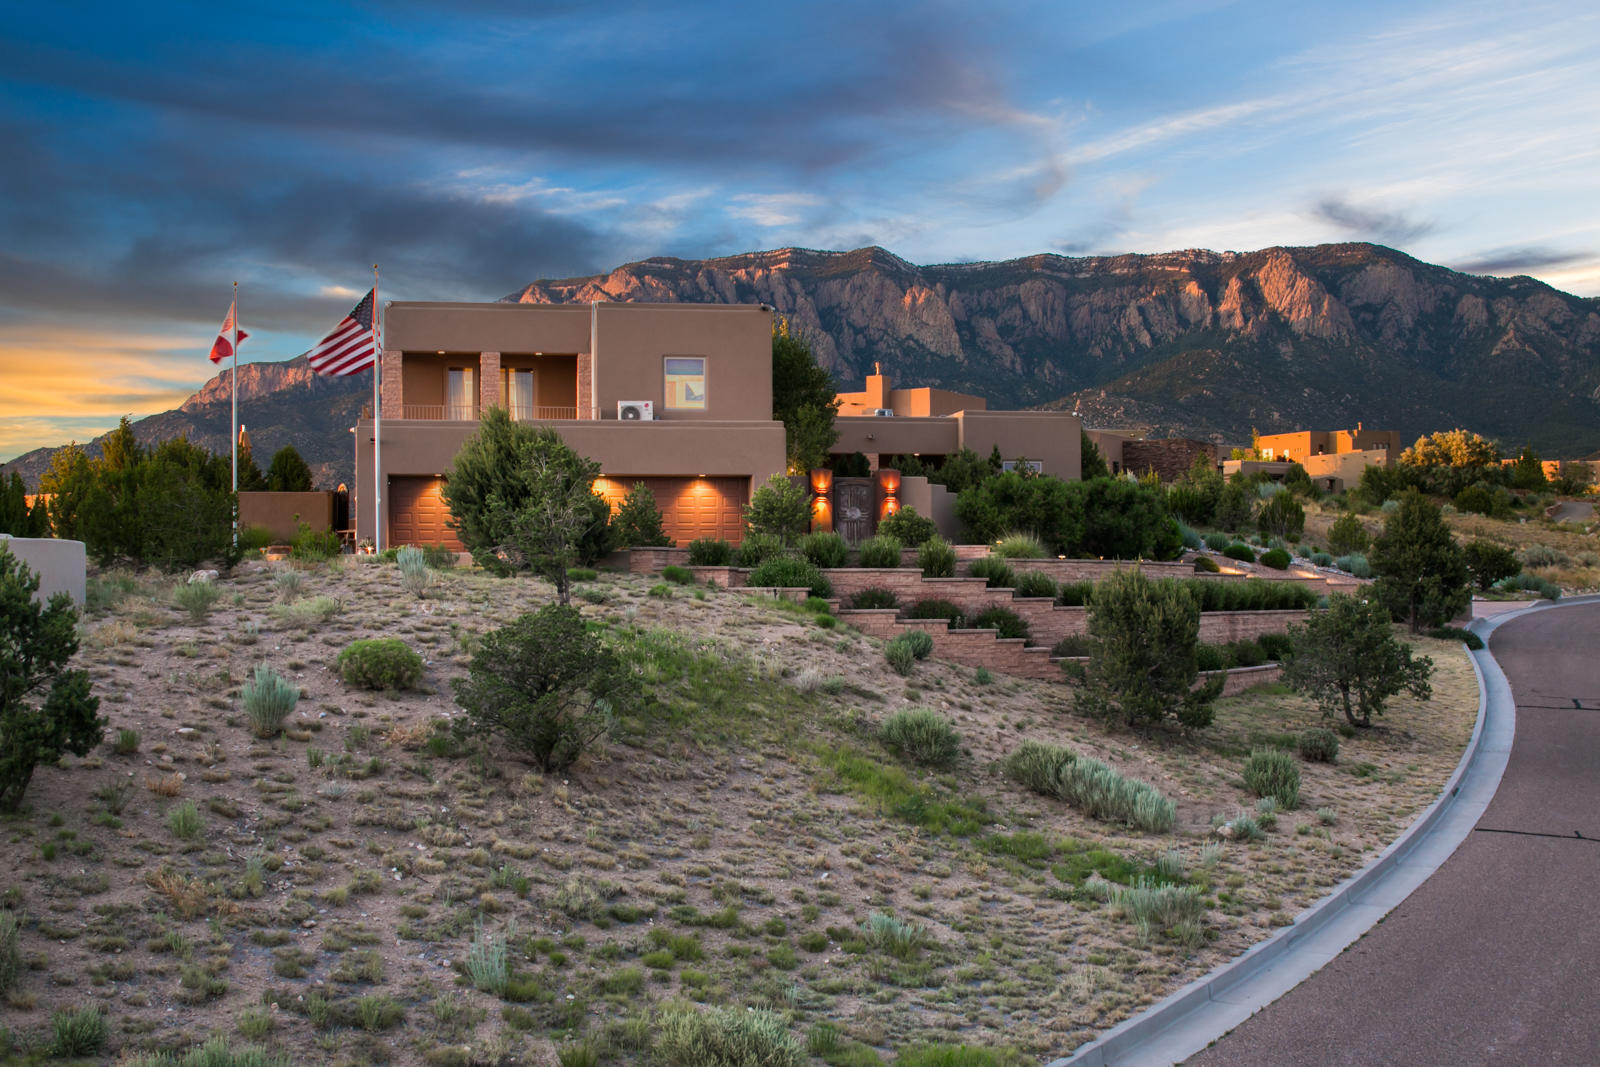 With breathtaking 360-degree views and tasteful attention to detail and quality, this is an exceptional jewel in the midst of the Land of Enchantment. Set between the rambling vistas of Bear Canyon and the towering majesty of the Sandia mountains, this home has been extensively remodeled with an elegant mix of Southwestern and European style. An eye-catching kitchen in white with handpicked Alpine Granite, top-of-the-line appliances, and a striking center island by a known artist. The outdoors inspire with a wrap-around flagstone patio, beautifully designed landscape with pinons, and a grassy area with a stone sculpture garden. 5 min. by foot to the trailheads; by car, it's 20 min. to the airport and Old Town, 10 min. to Whole Foods and private school Abq. Academy, and 50 min. to Santa Fe.